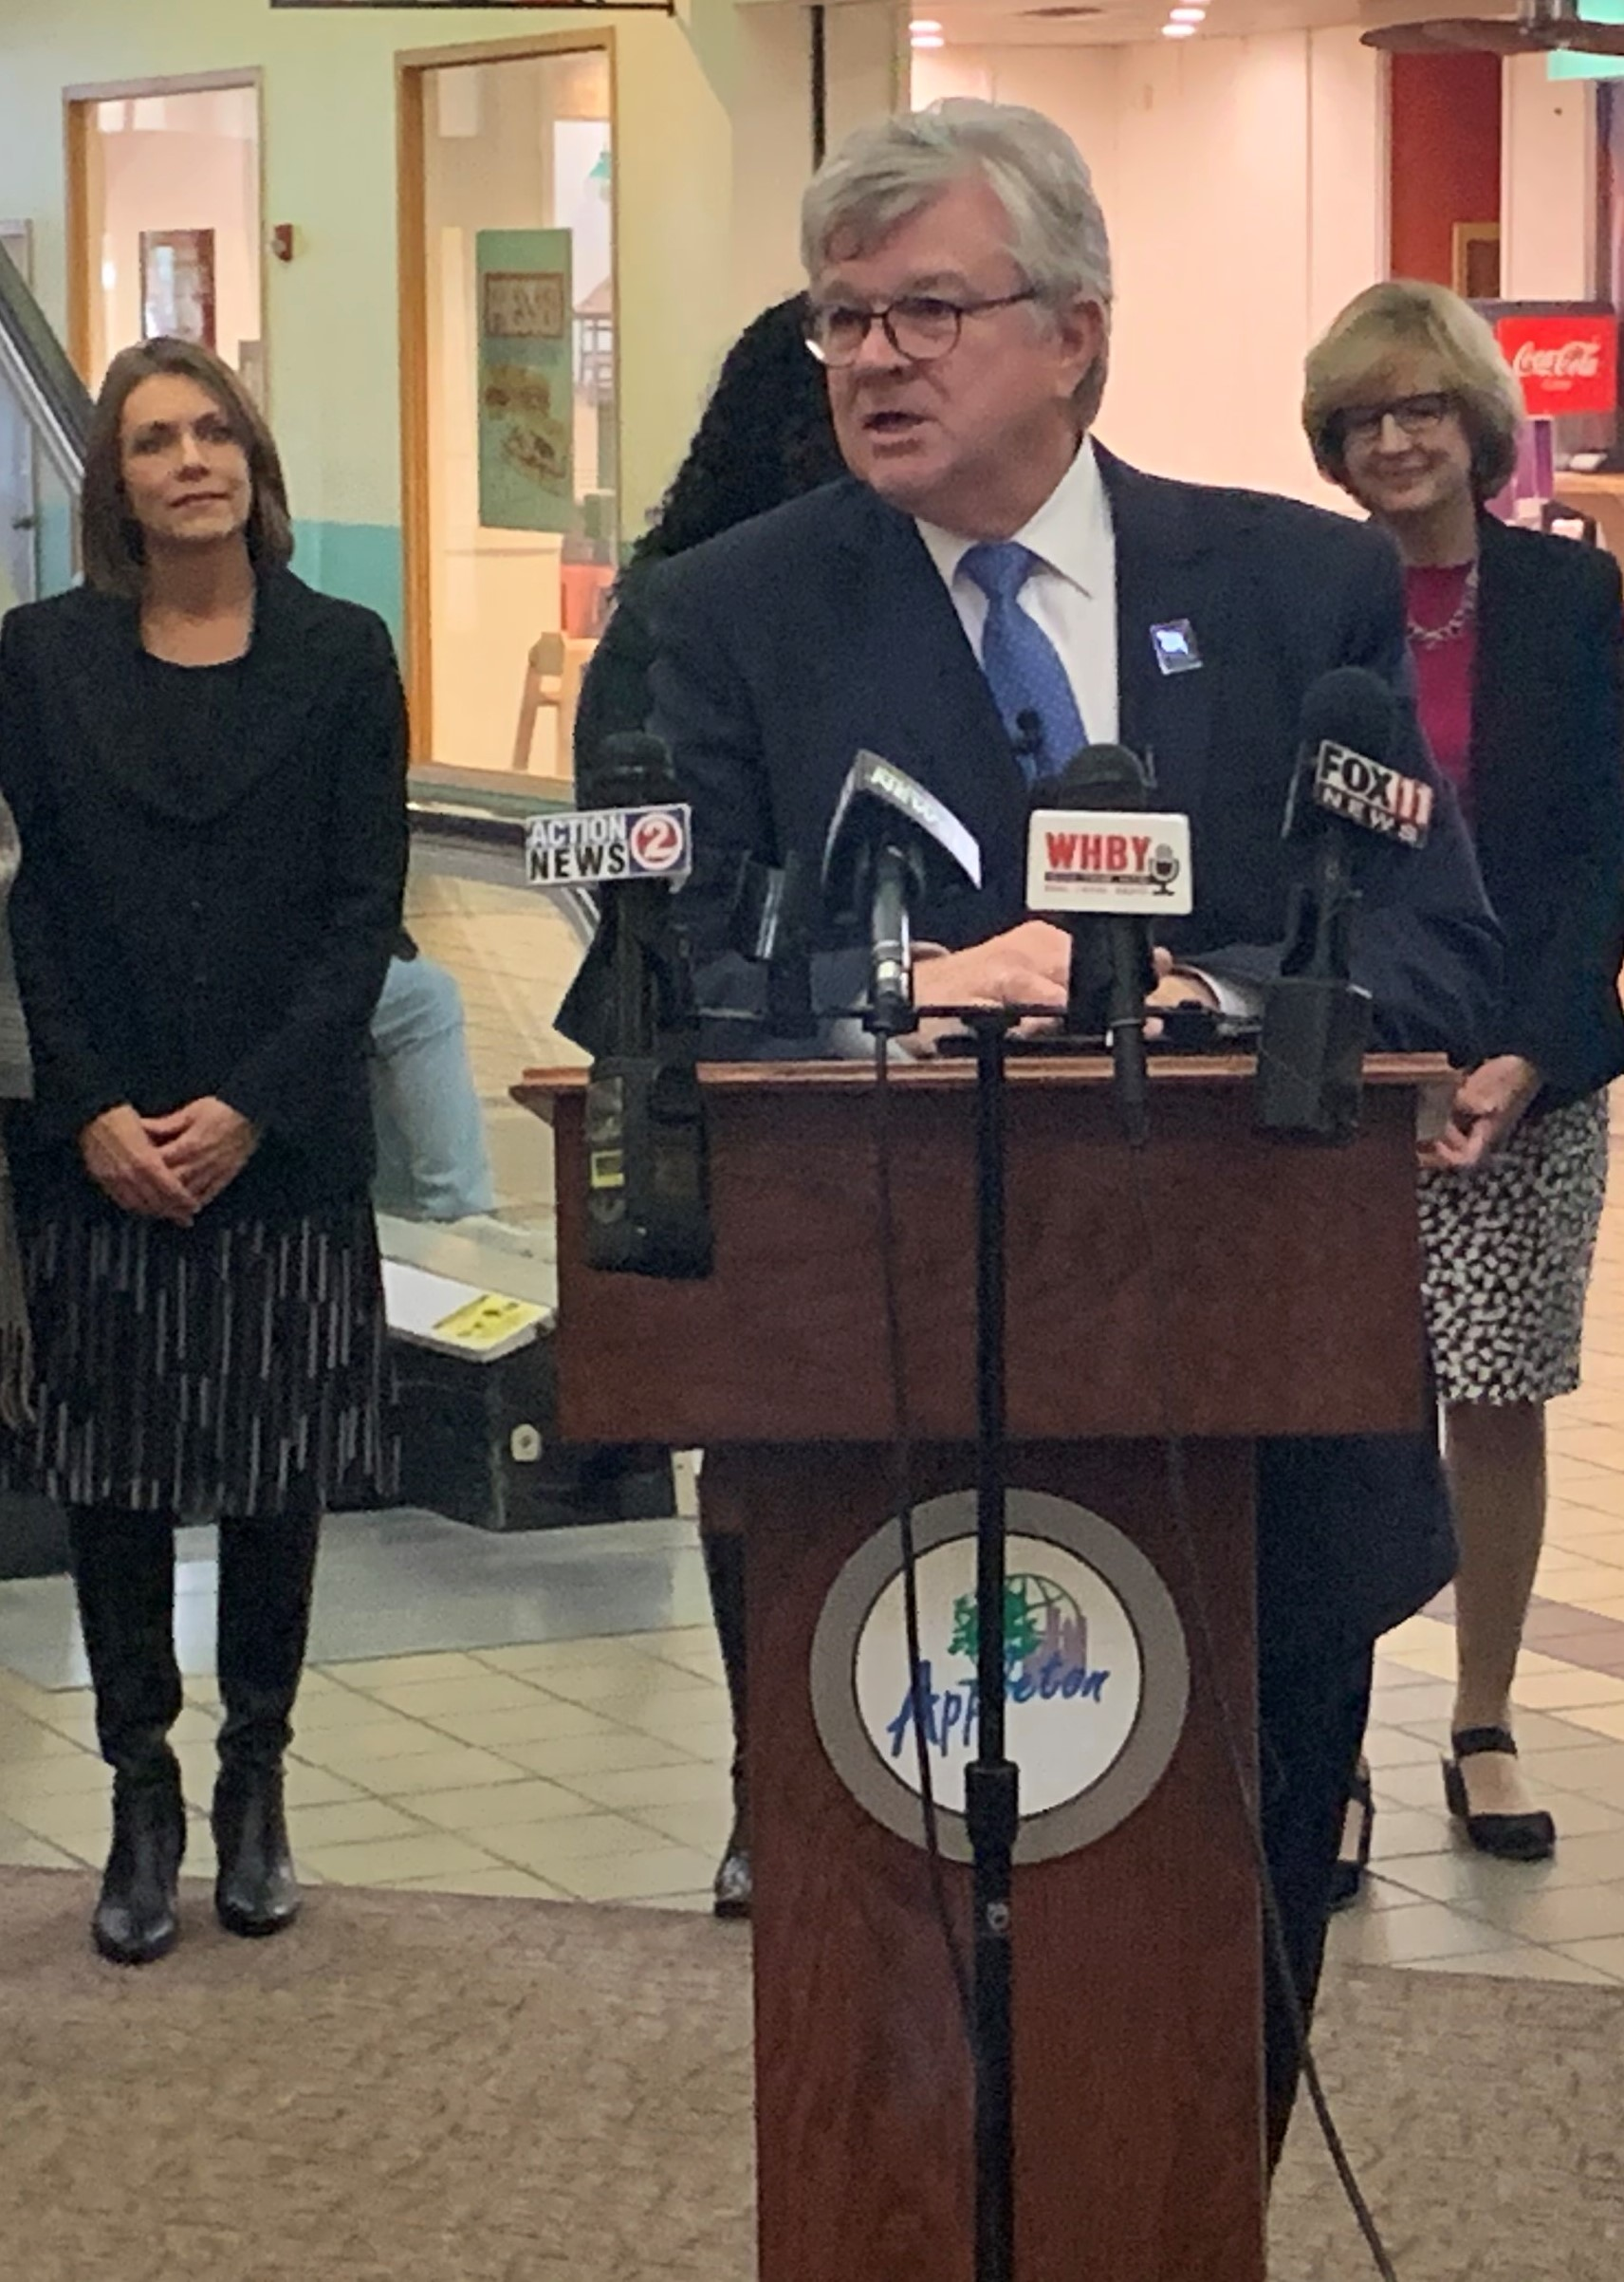 Mayor Hanna announces he won't run for 7th term in April